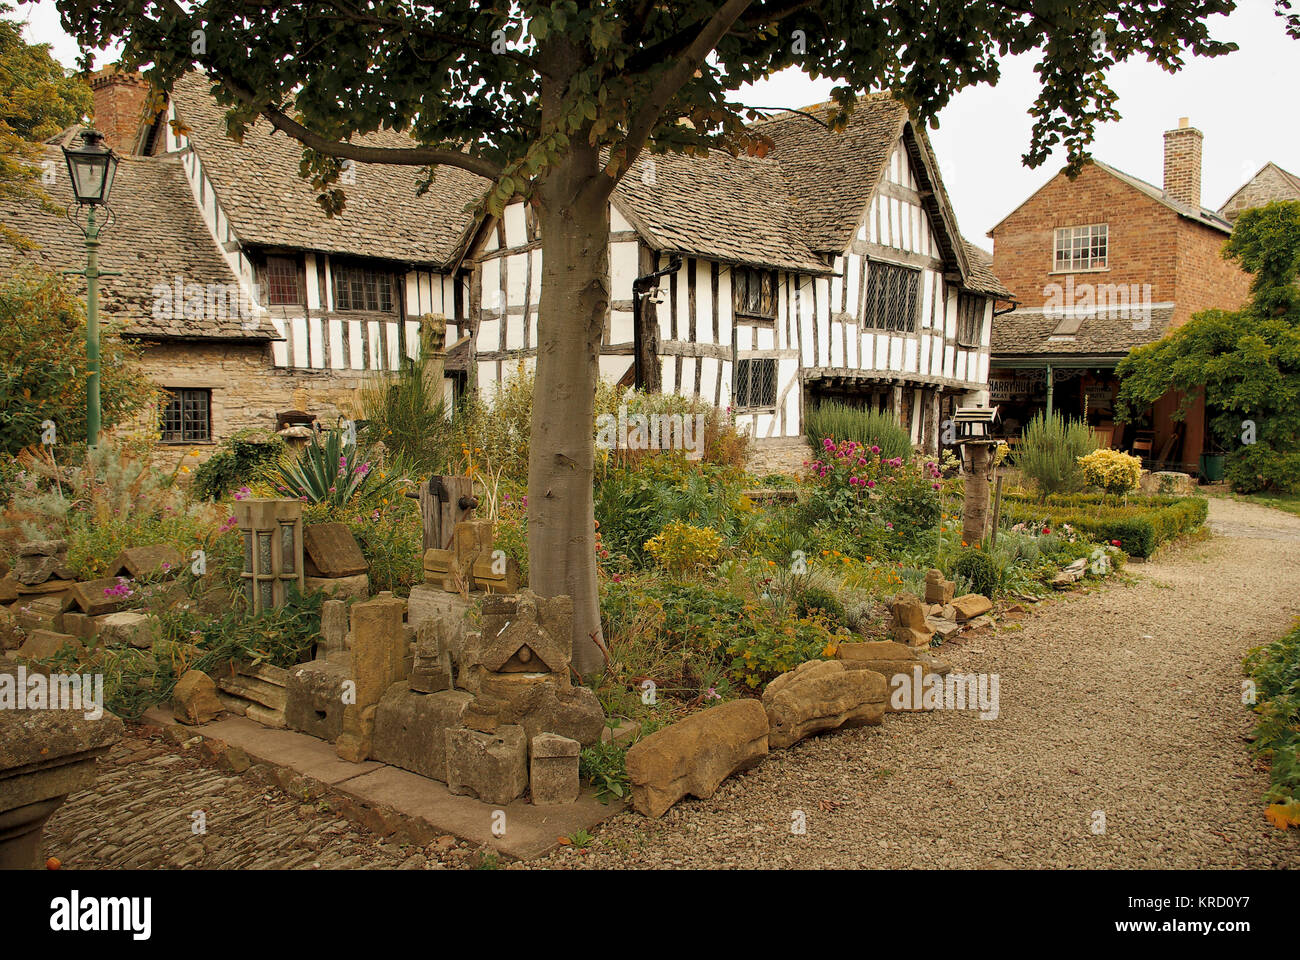 The Almonry, Evesham, Worcestershire, viewed across a rockery style garden.  The 14th century building was once - Stock Image